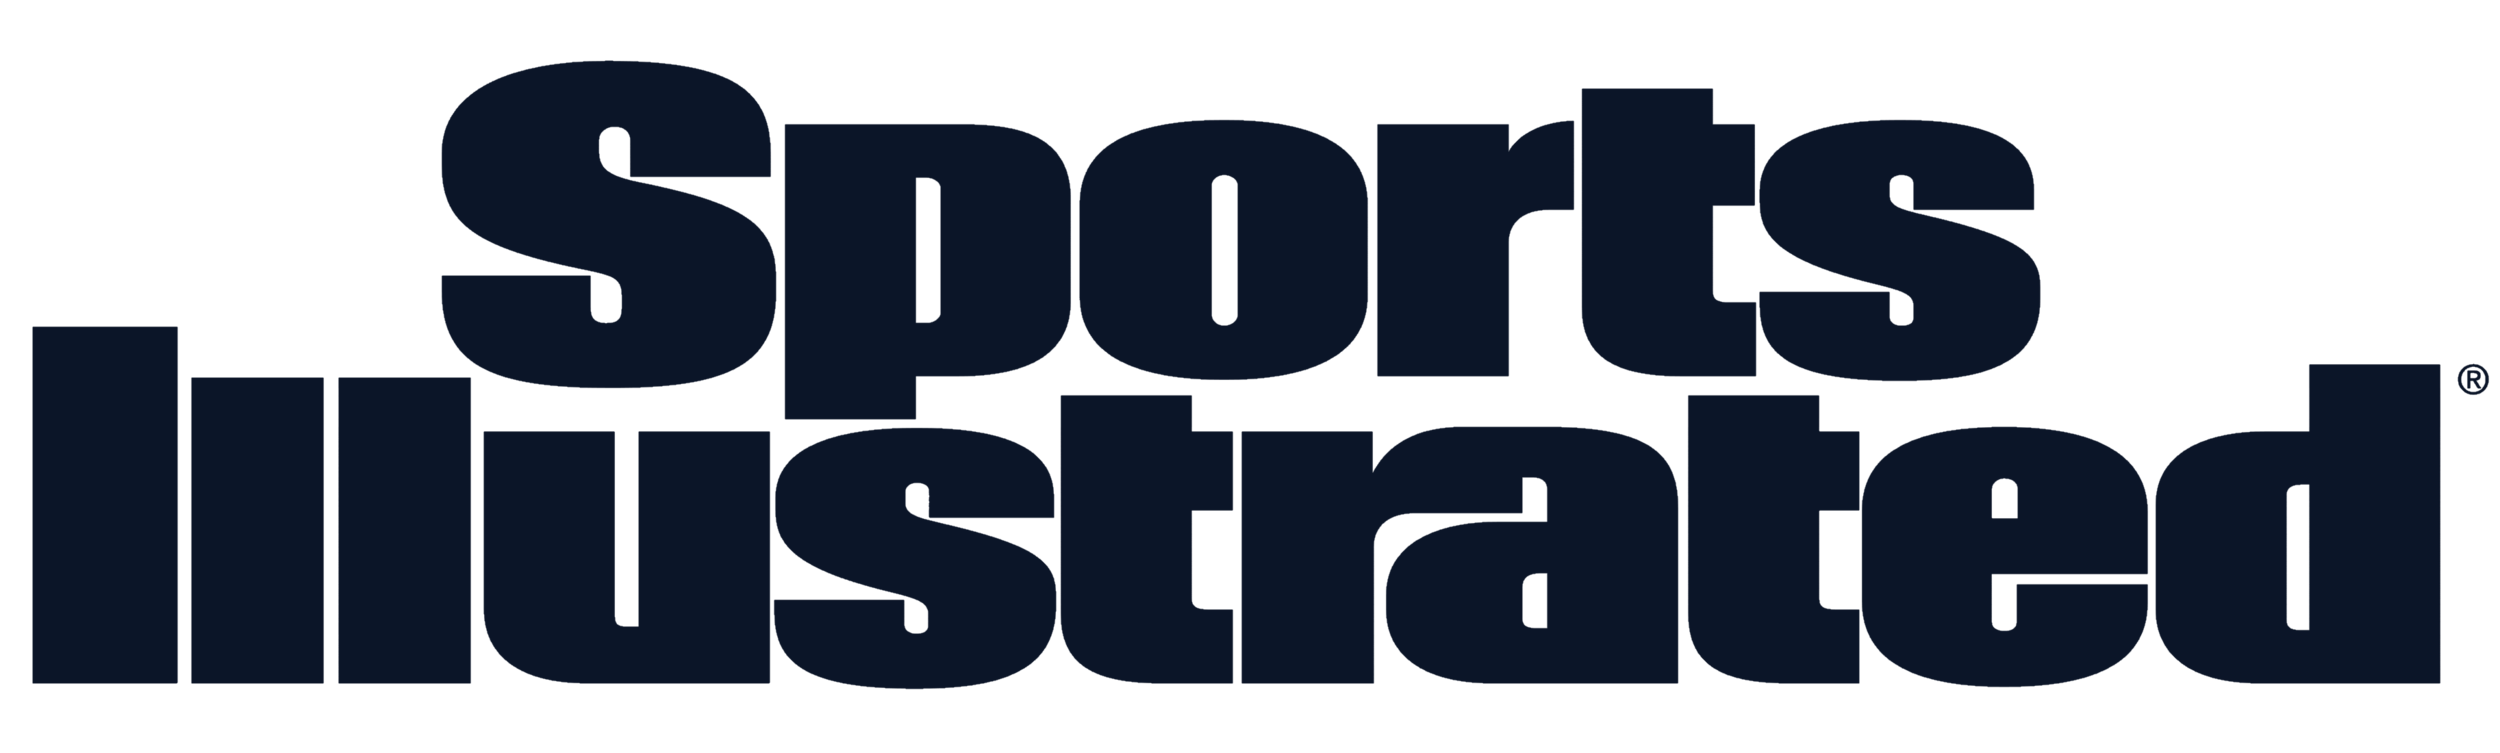 Sports_Illustrated_logo_blue.png